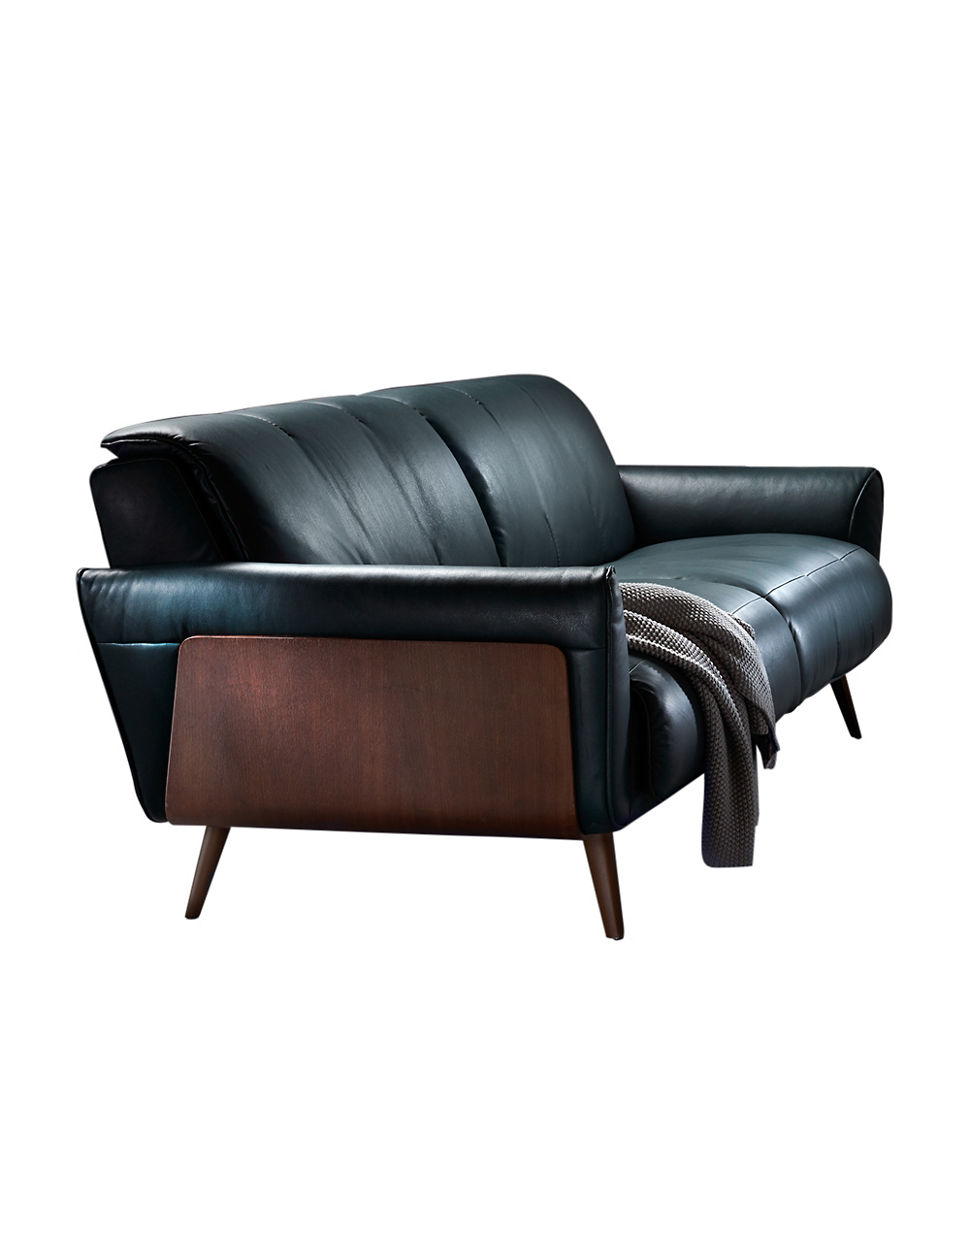 Sears Natuzzi Leather Sofa Furniture Sears Sofas Sofa Bed